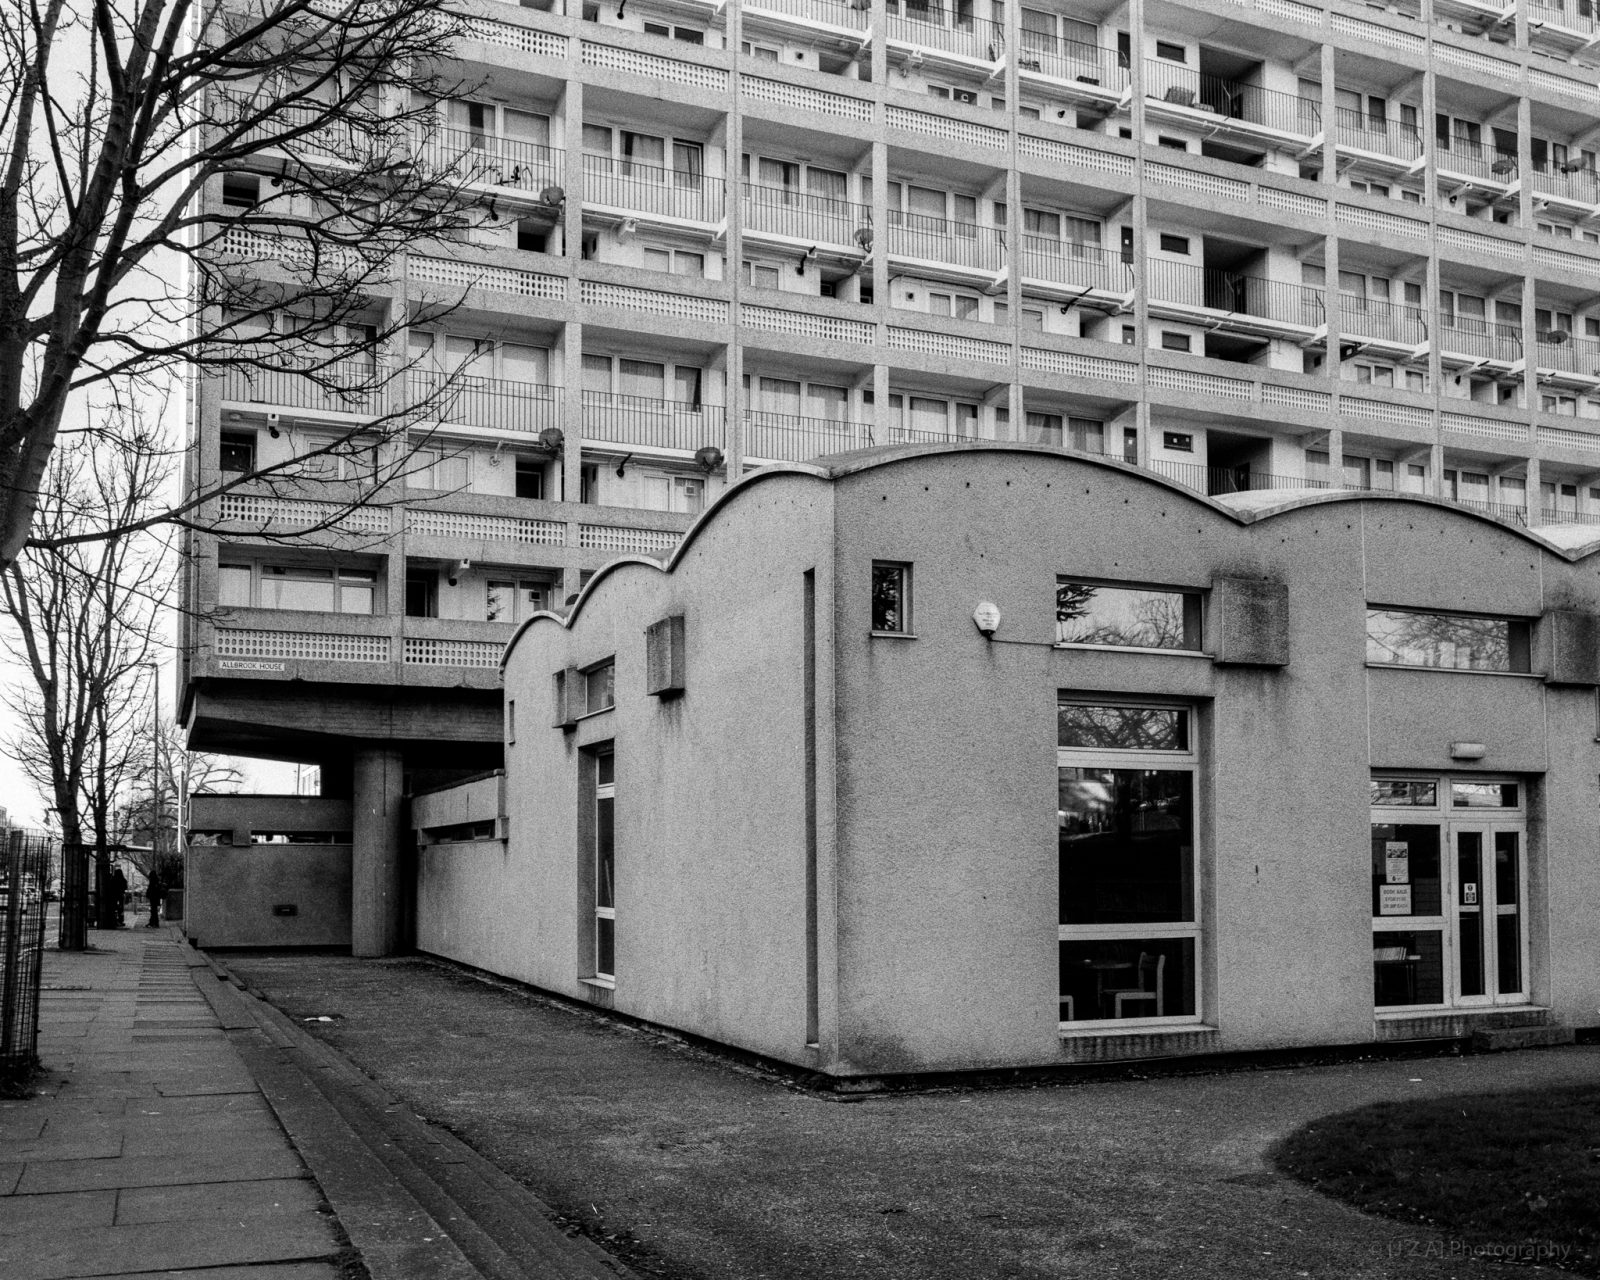 Alton Estate, Roehampton